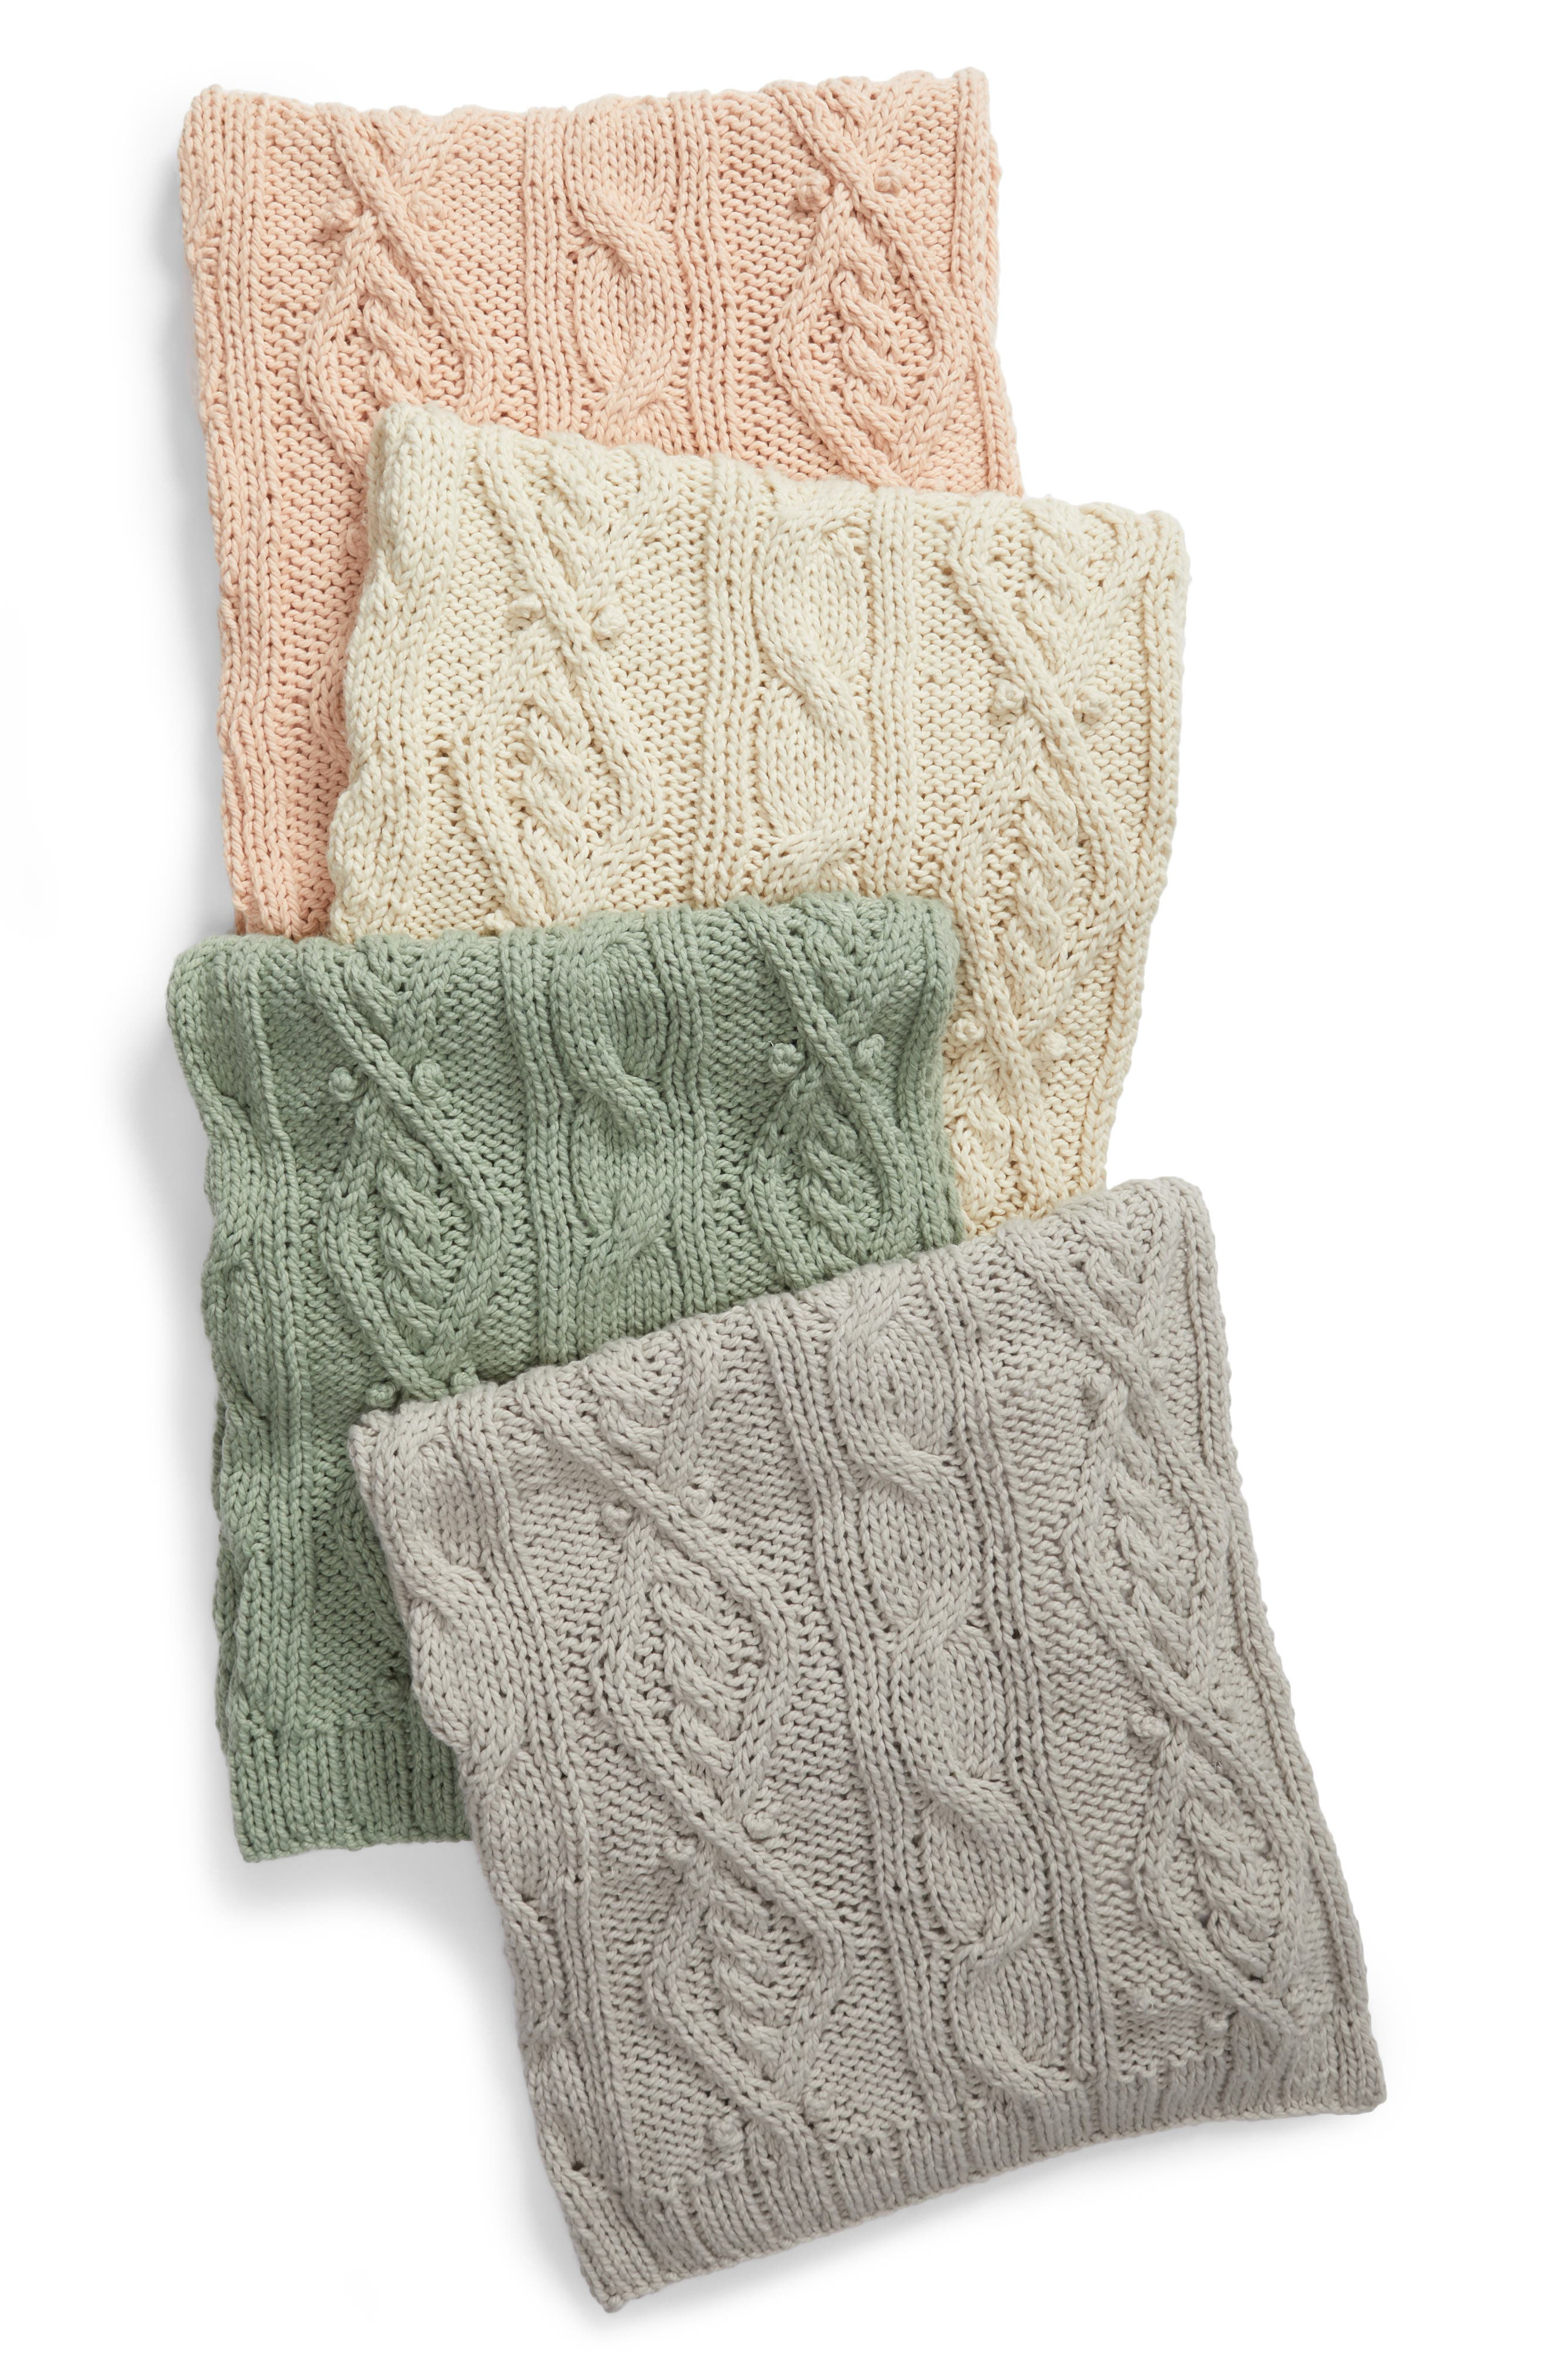 Chunky Cable Knit Throw Blanket,                             Alternate thumbnail 3, color,                             020